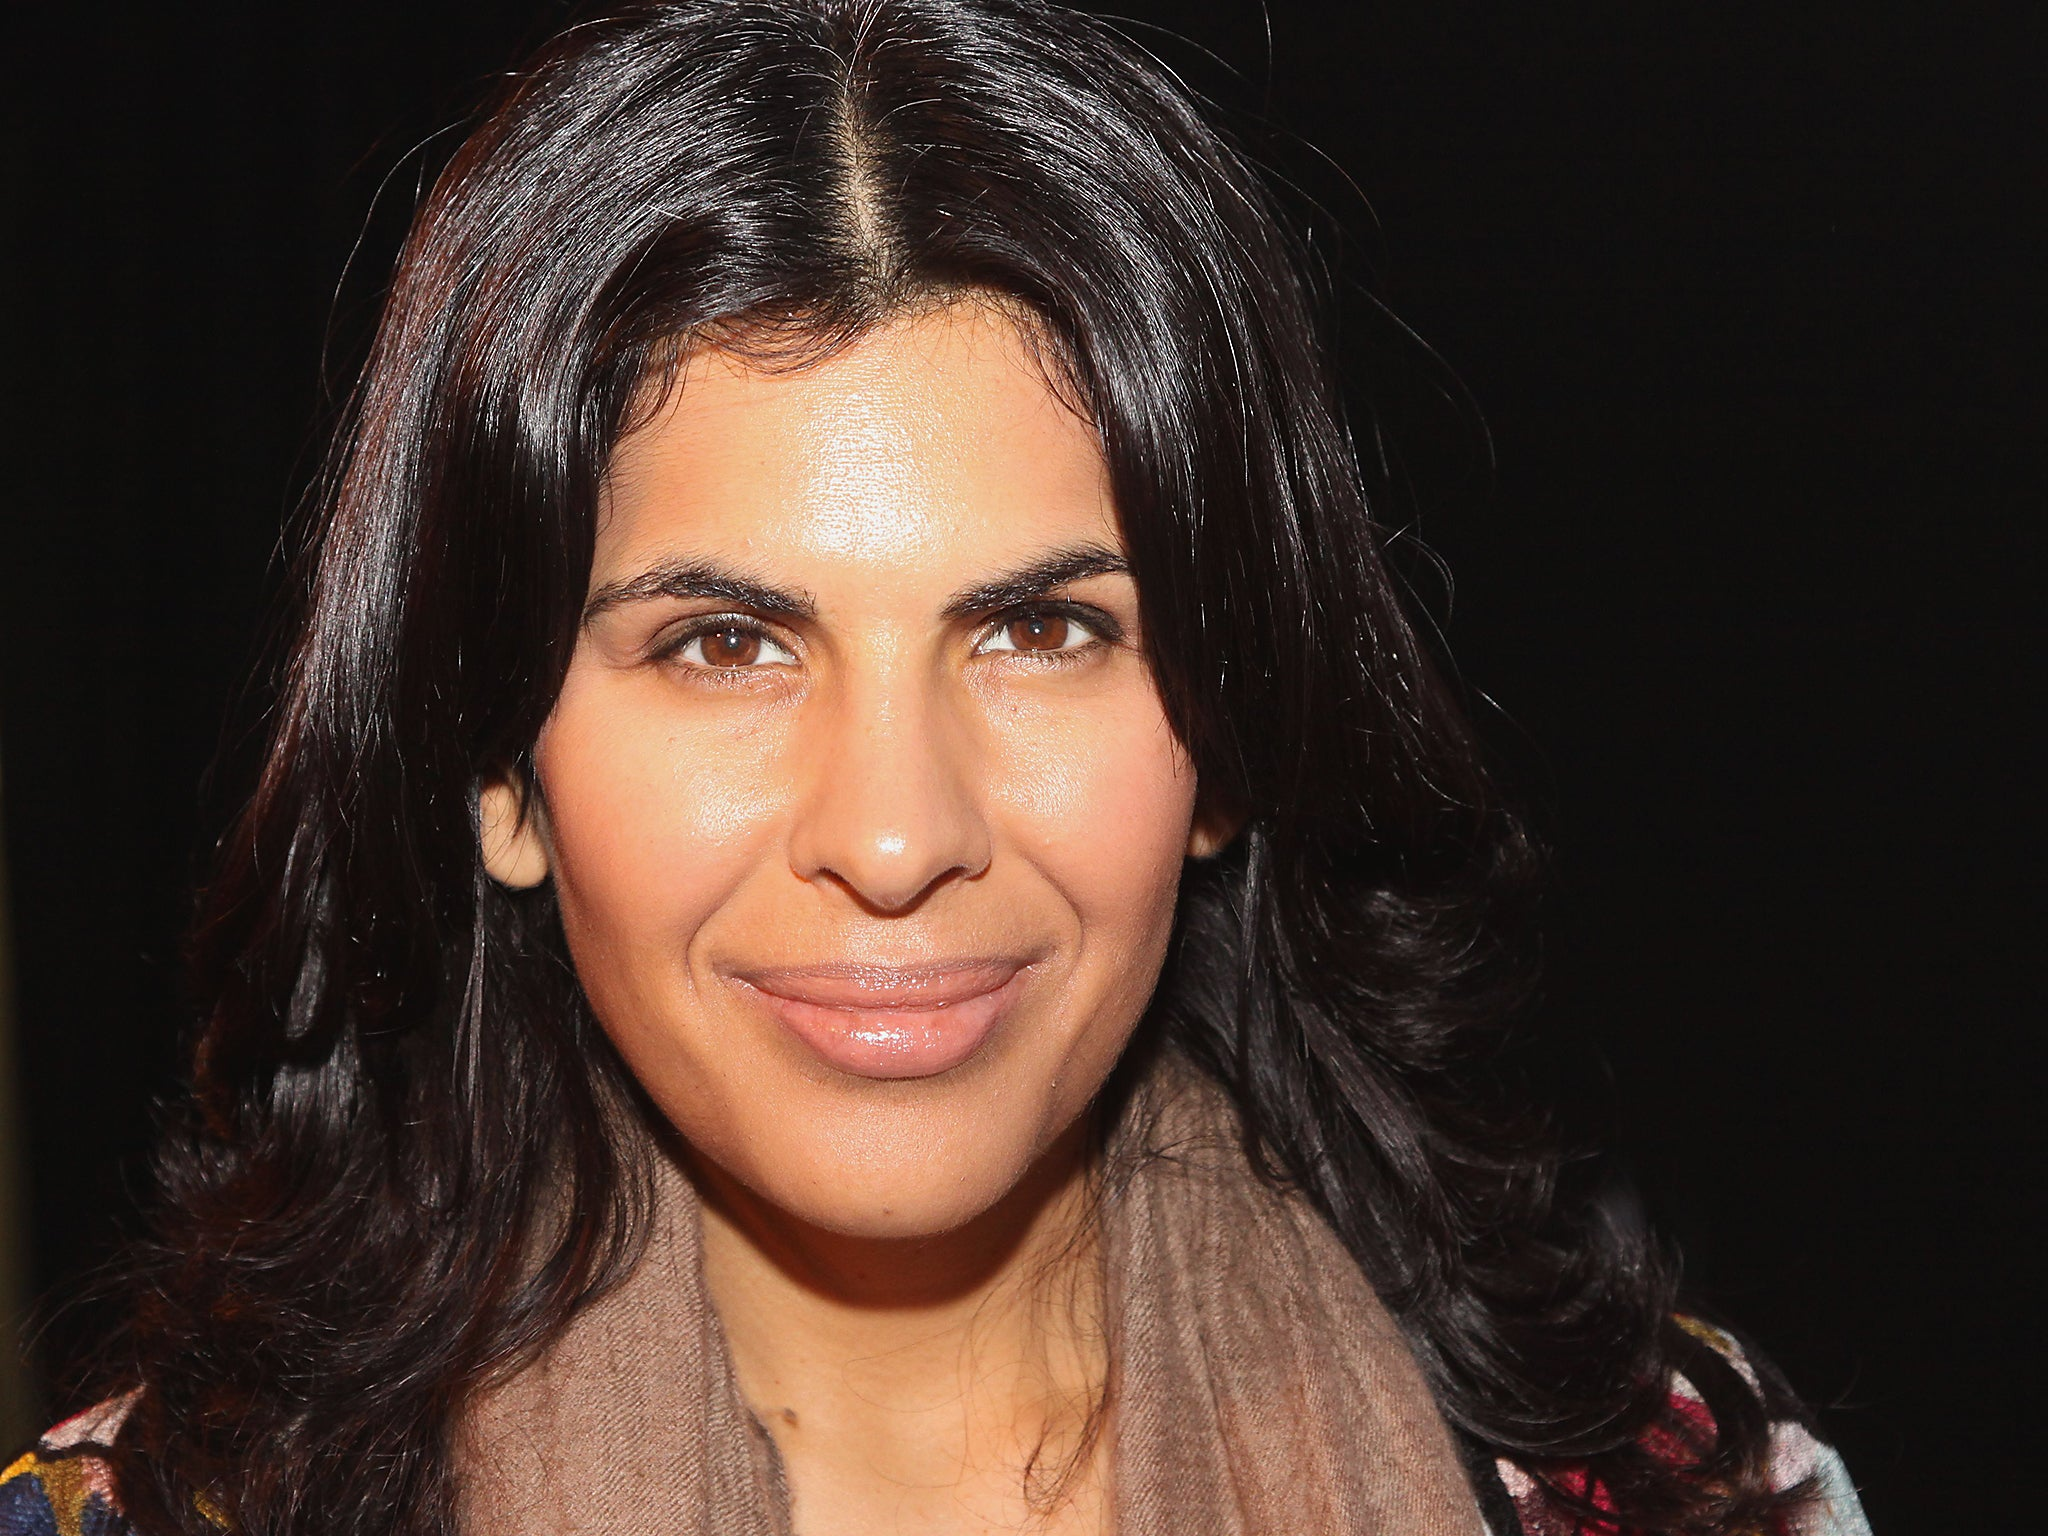 Five minutes with... Anjum Anand - The Independent